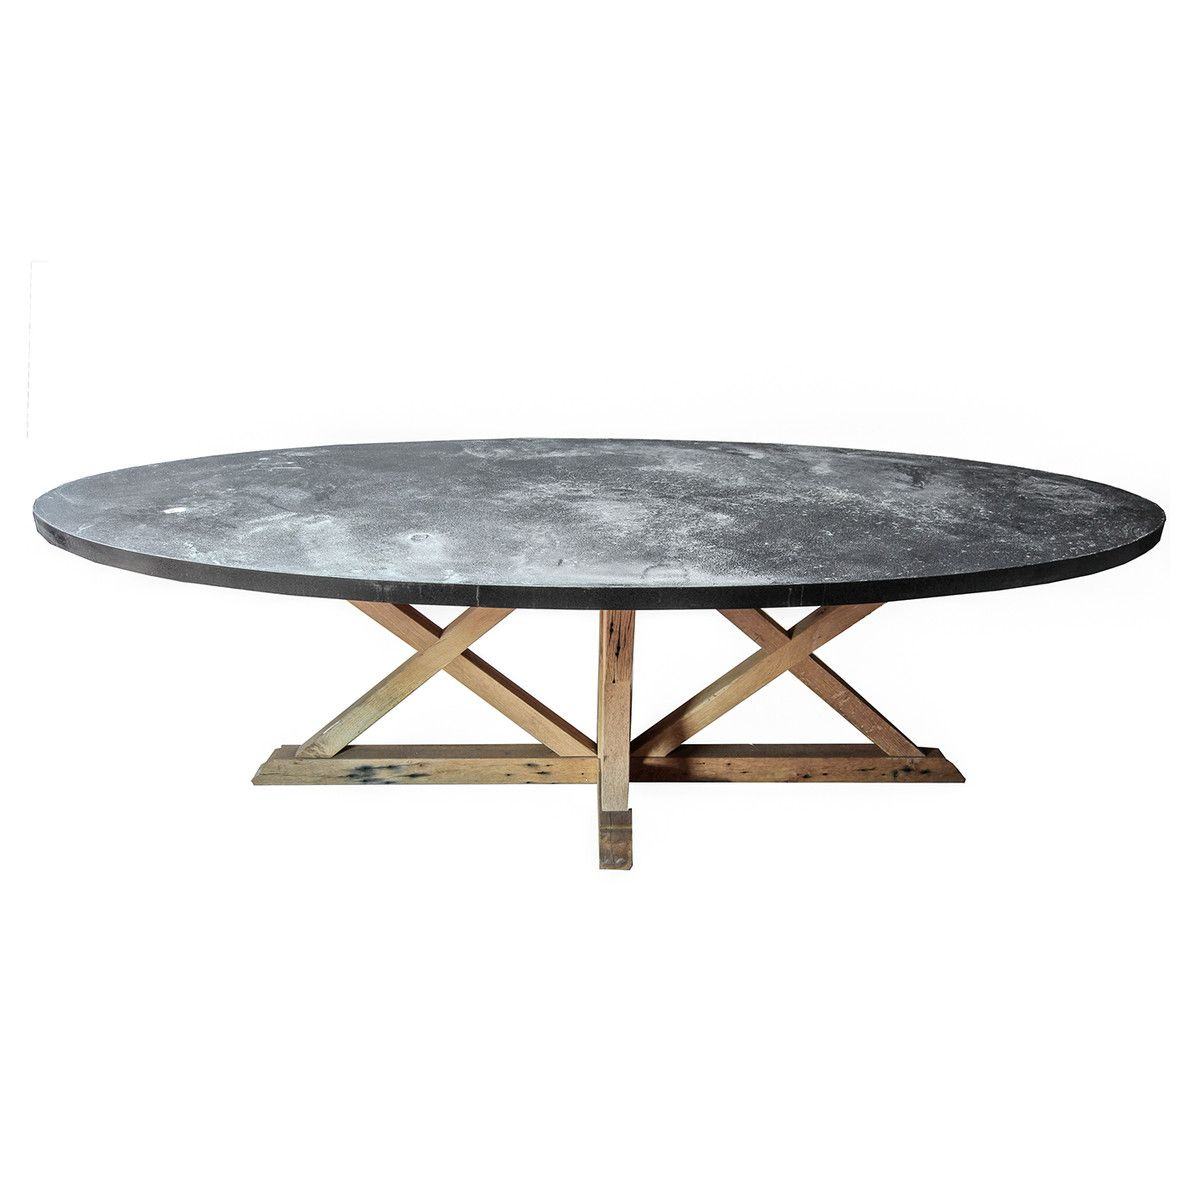 Love the lunar like finish of this zinc topped dining table